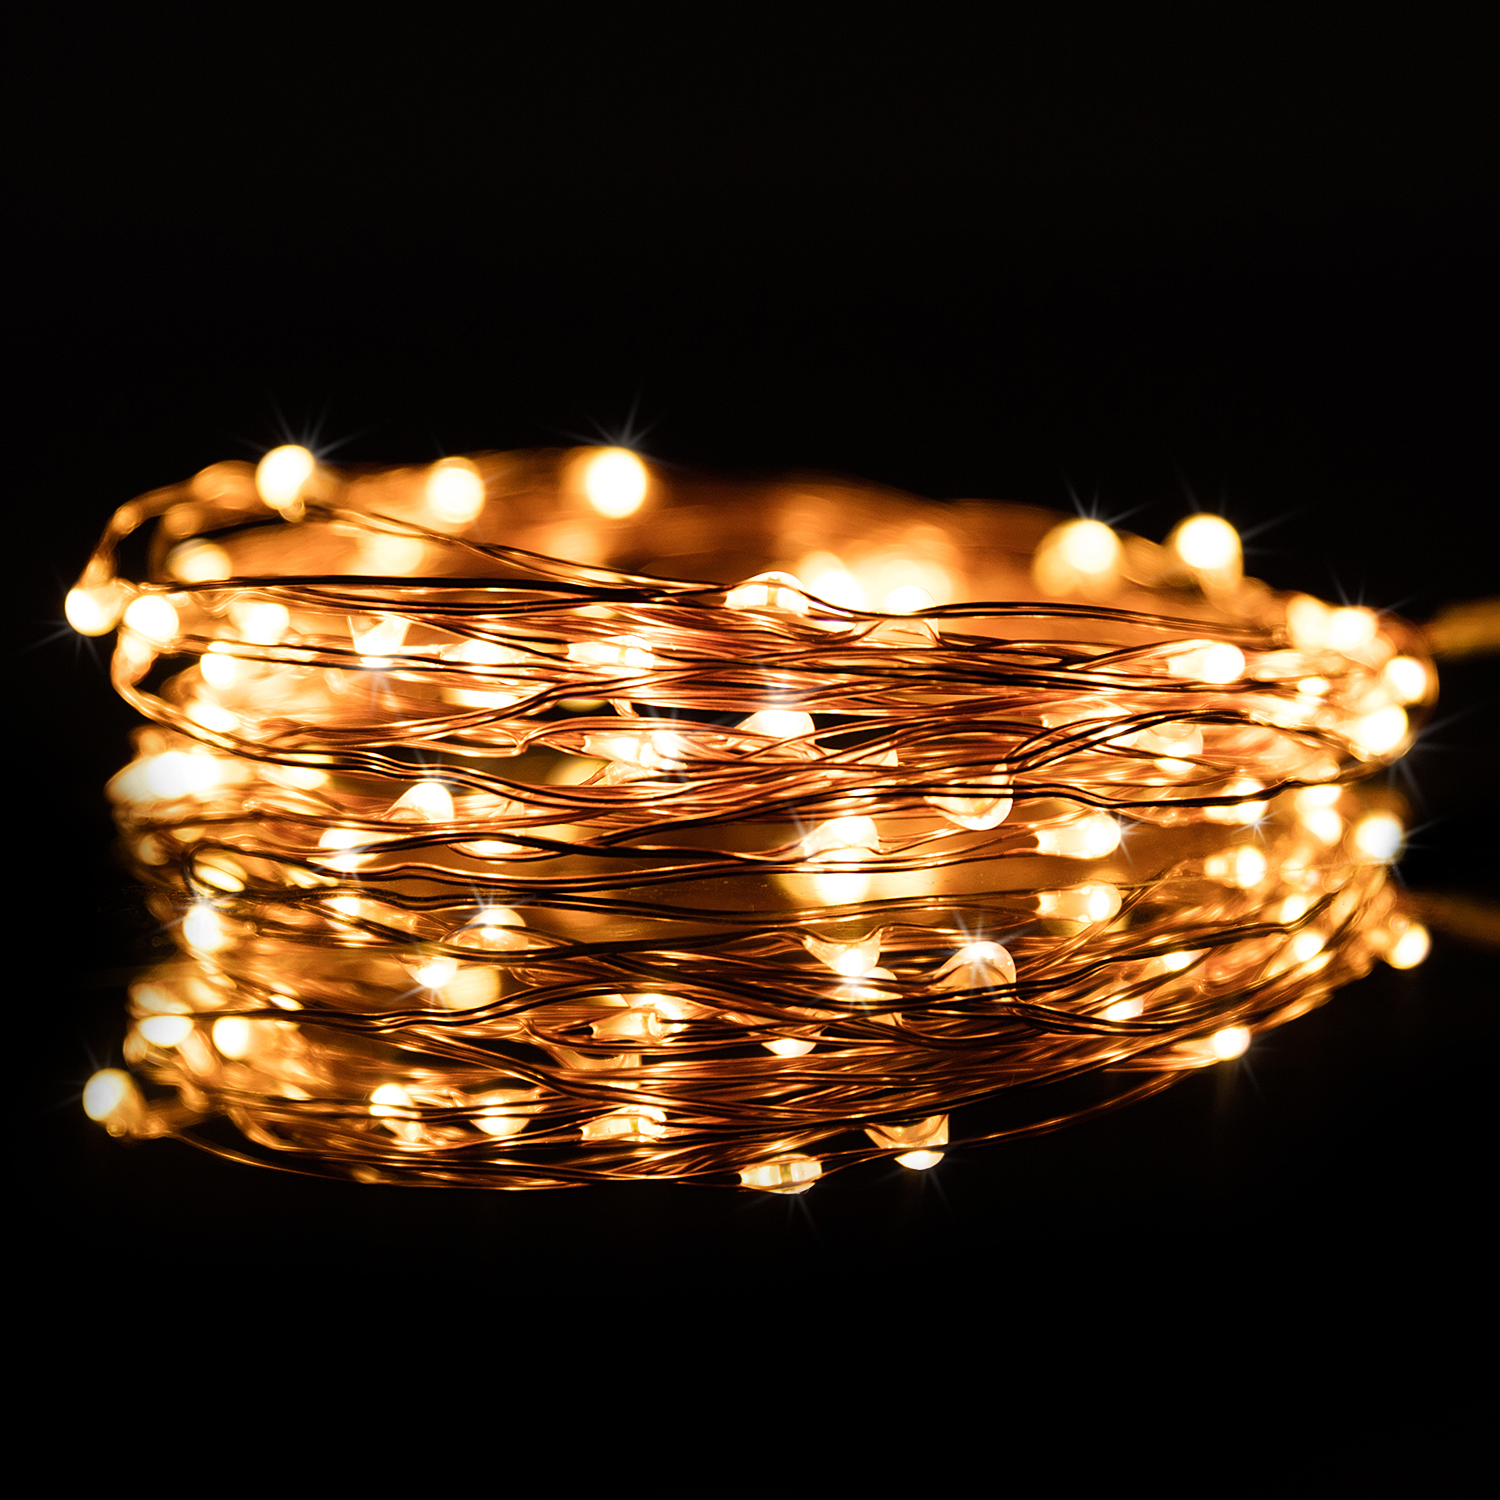 20ft 120 LED Warm White Color Bendable Micro Copper Wire String Fairy Light